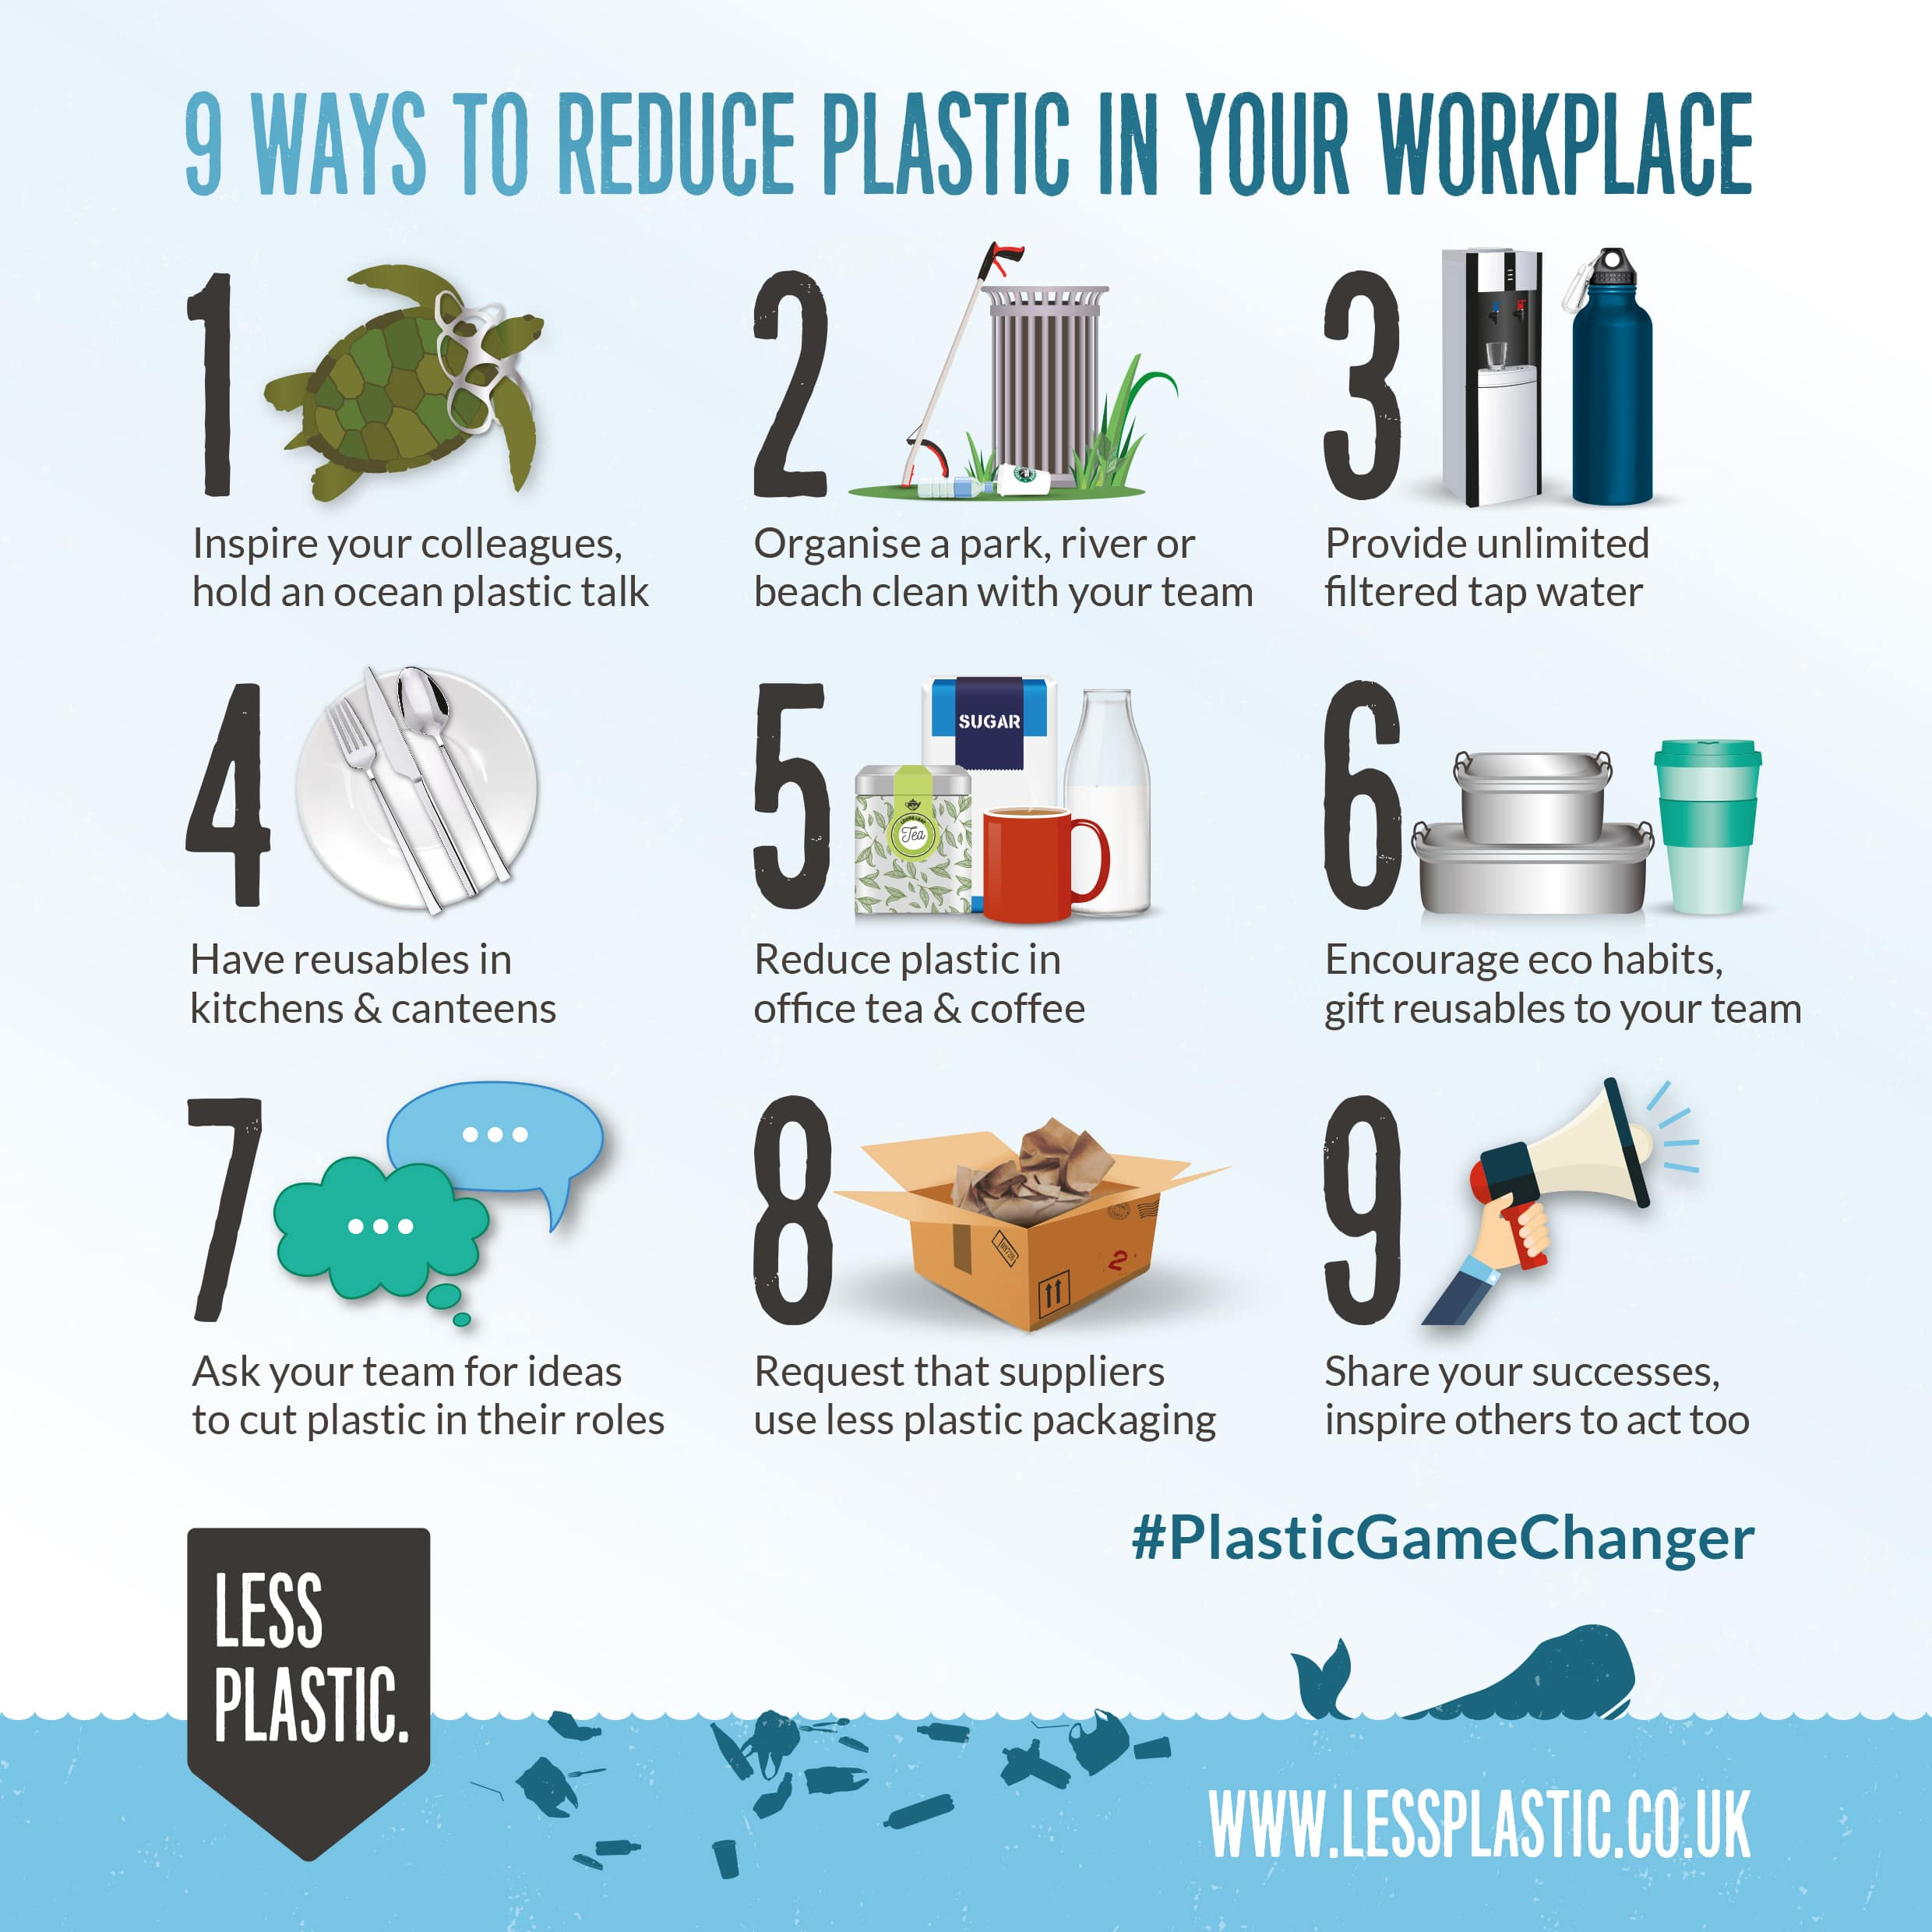 9 ways to reduce plastic in your workplace infographic